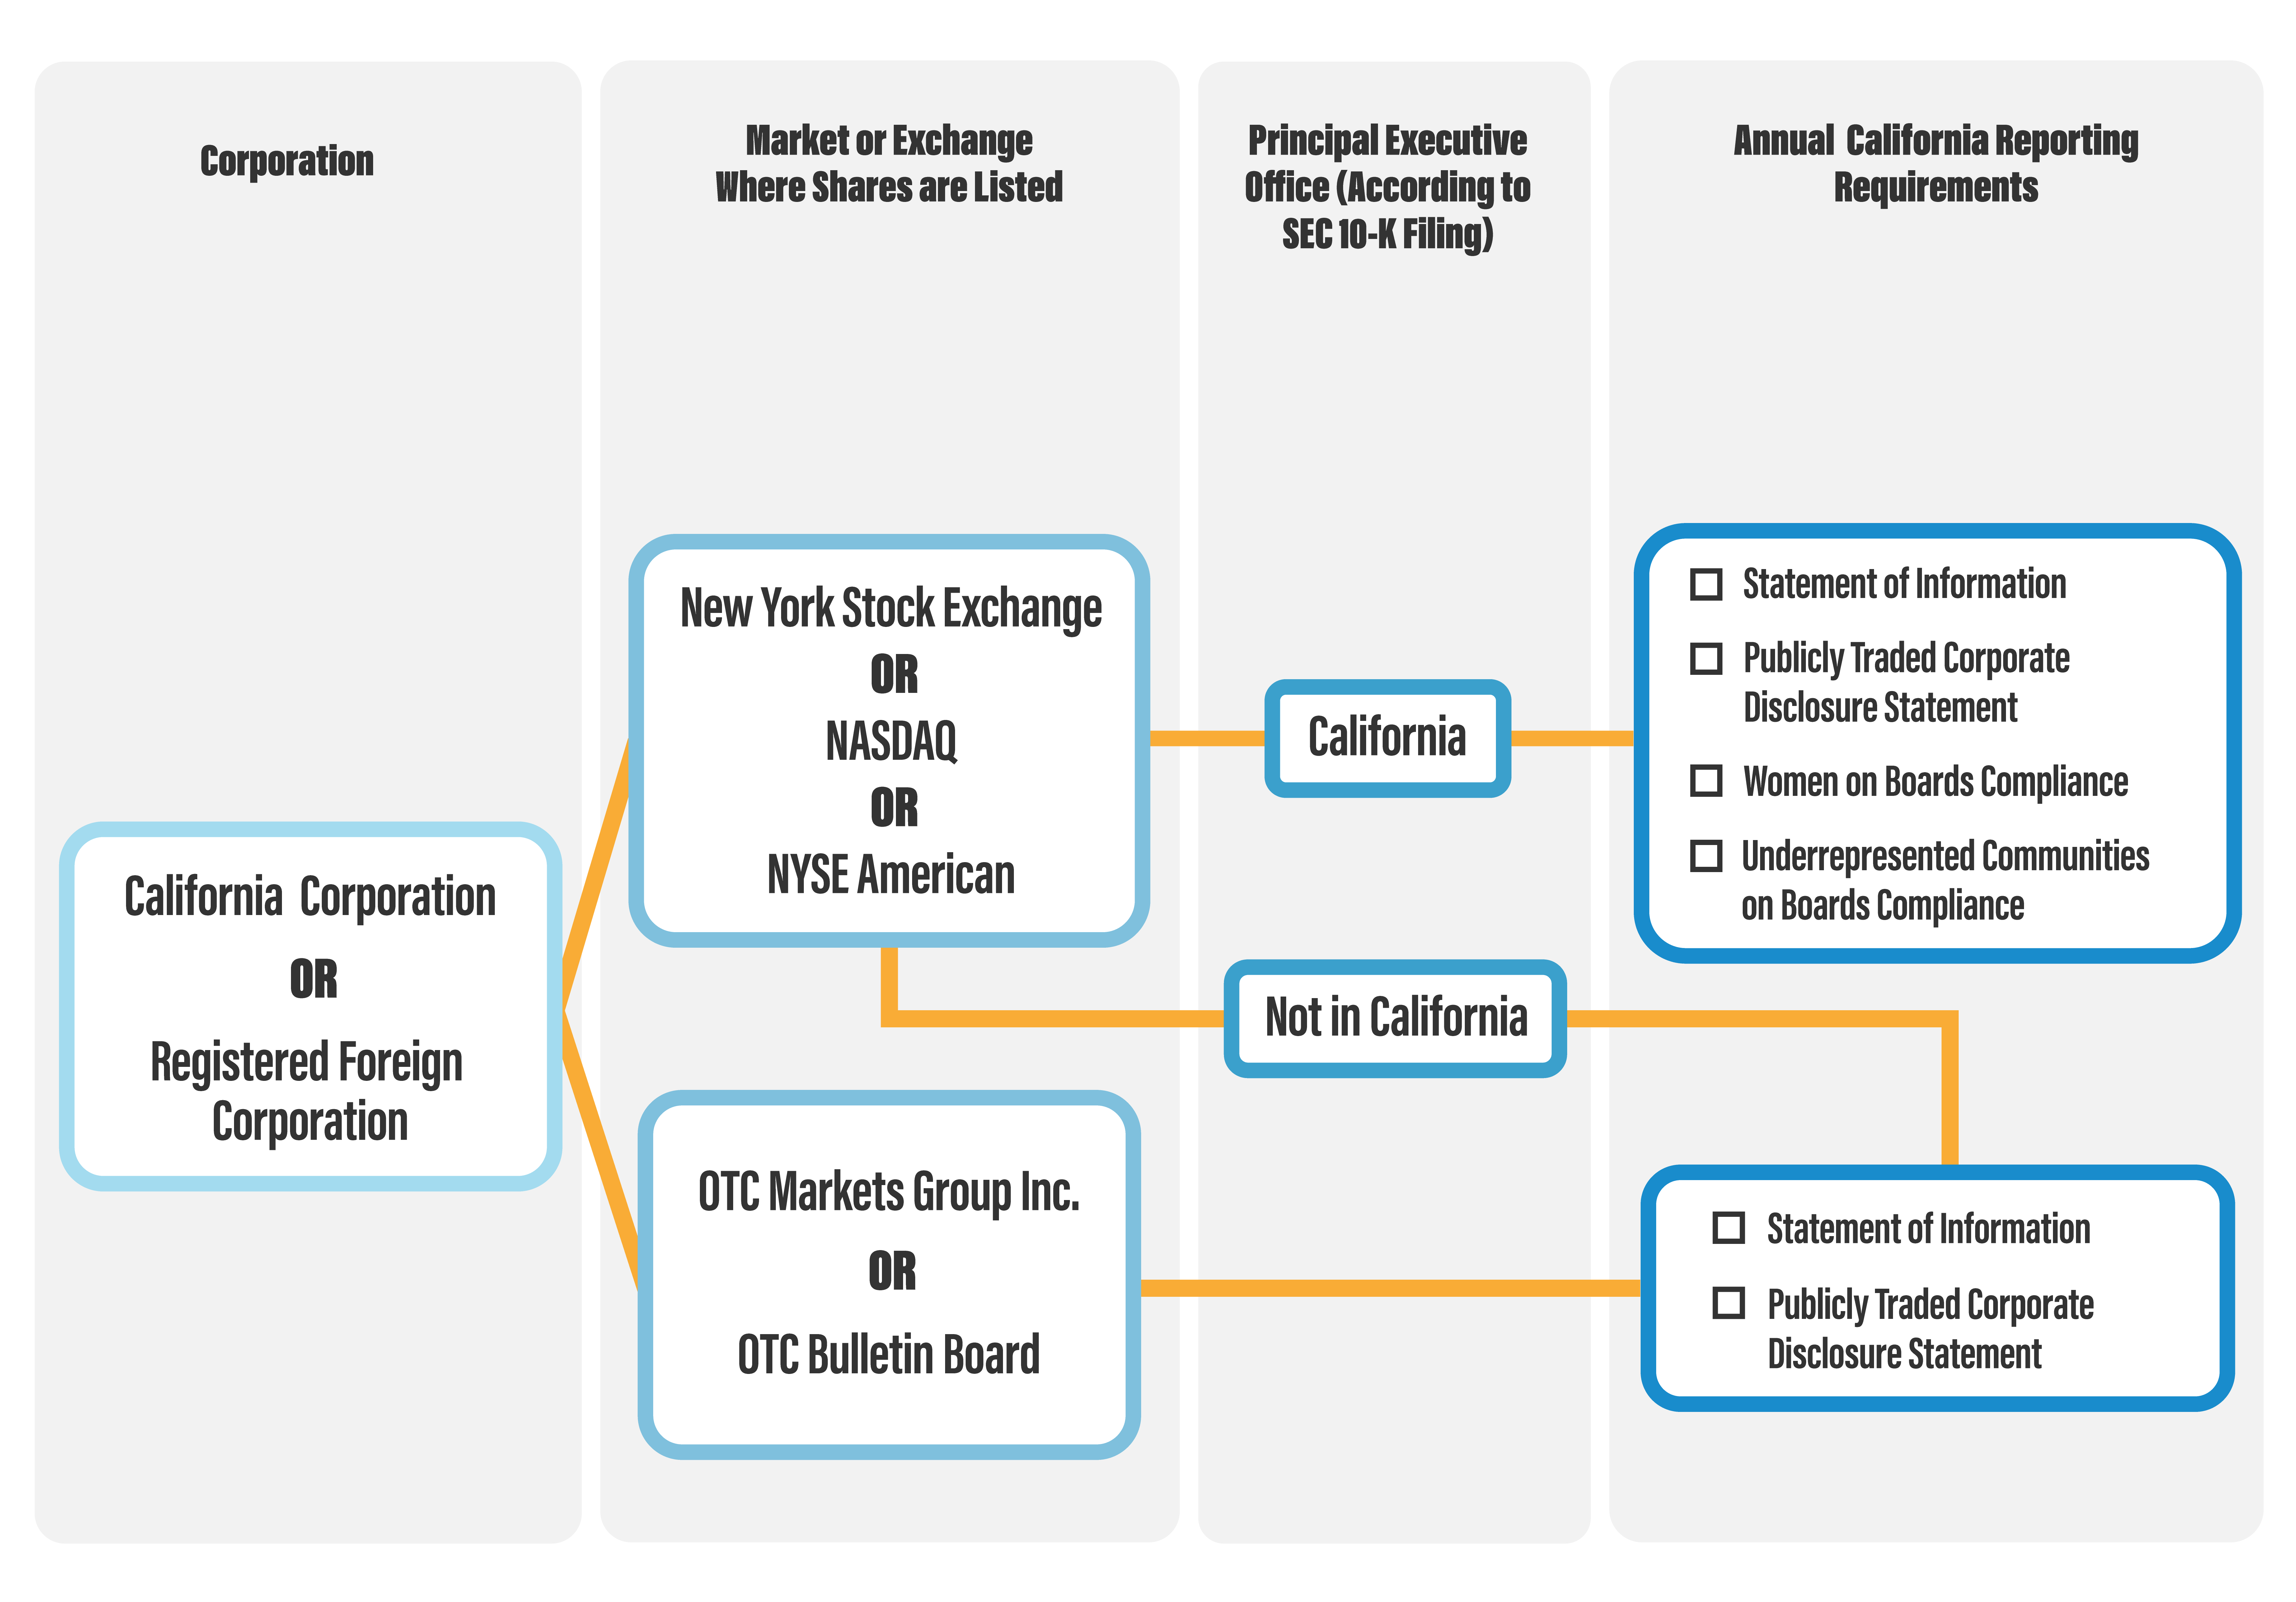 flowchart of criteria in determining which corporations are required to meet underrepresented communities requirements.